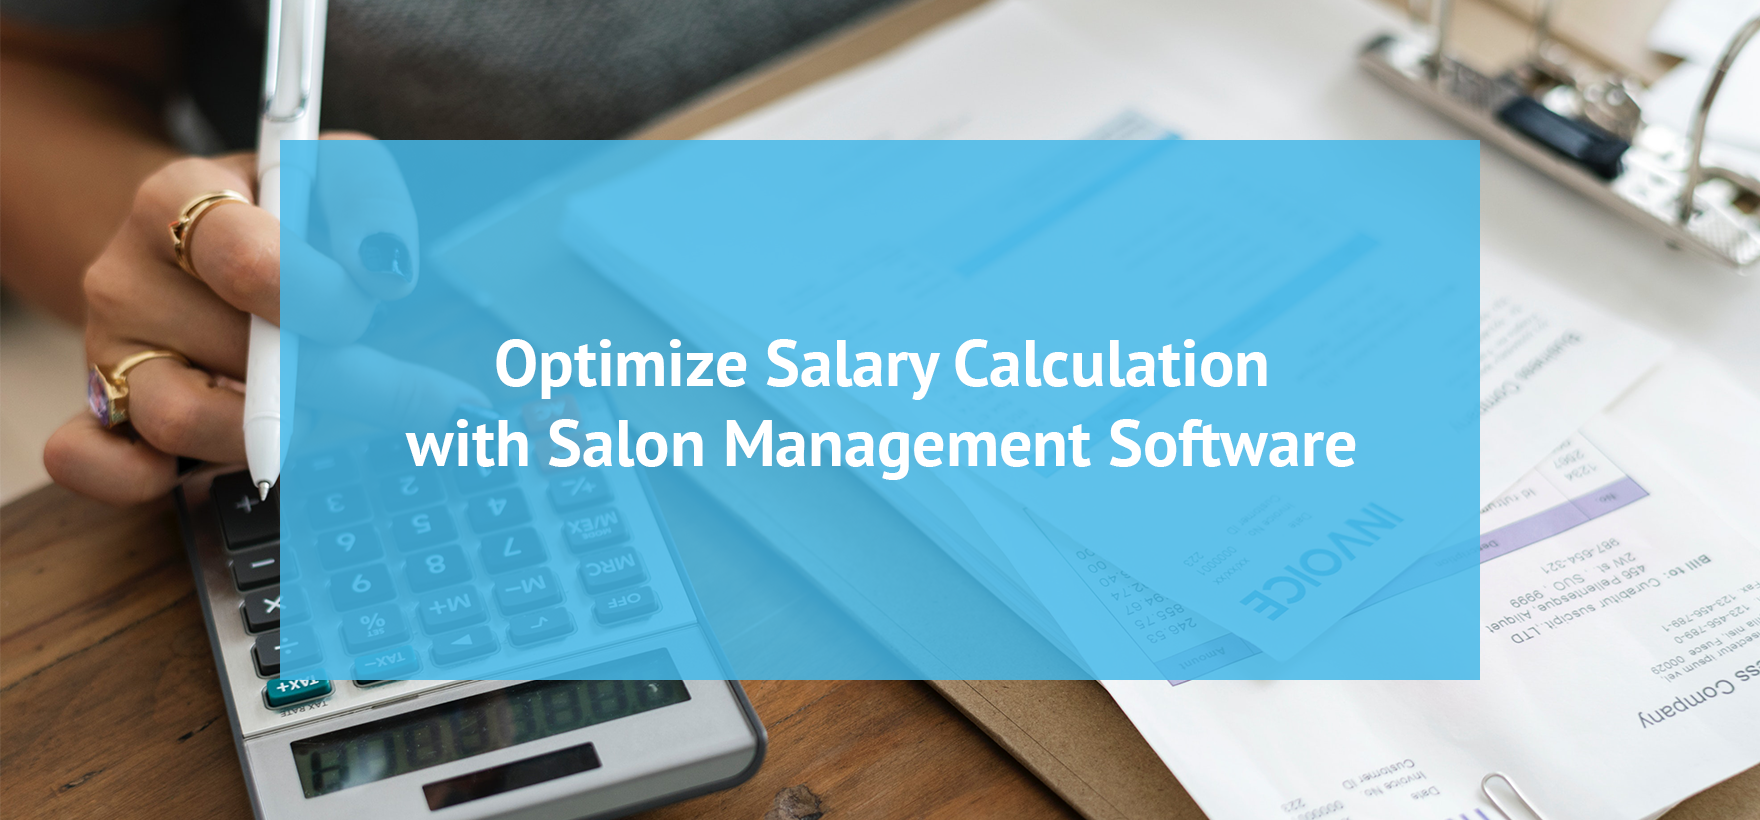 Optimize Salary Calculation with Salon Management Software